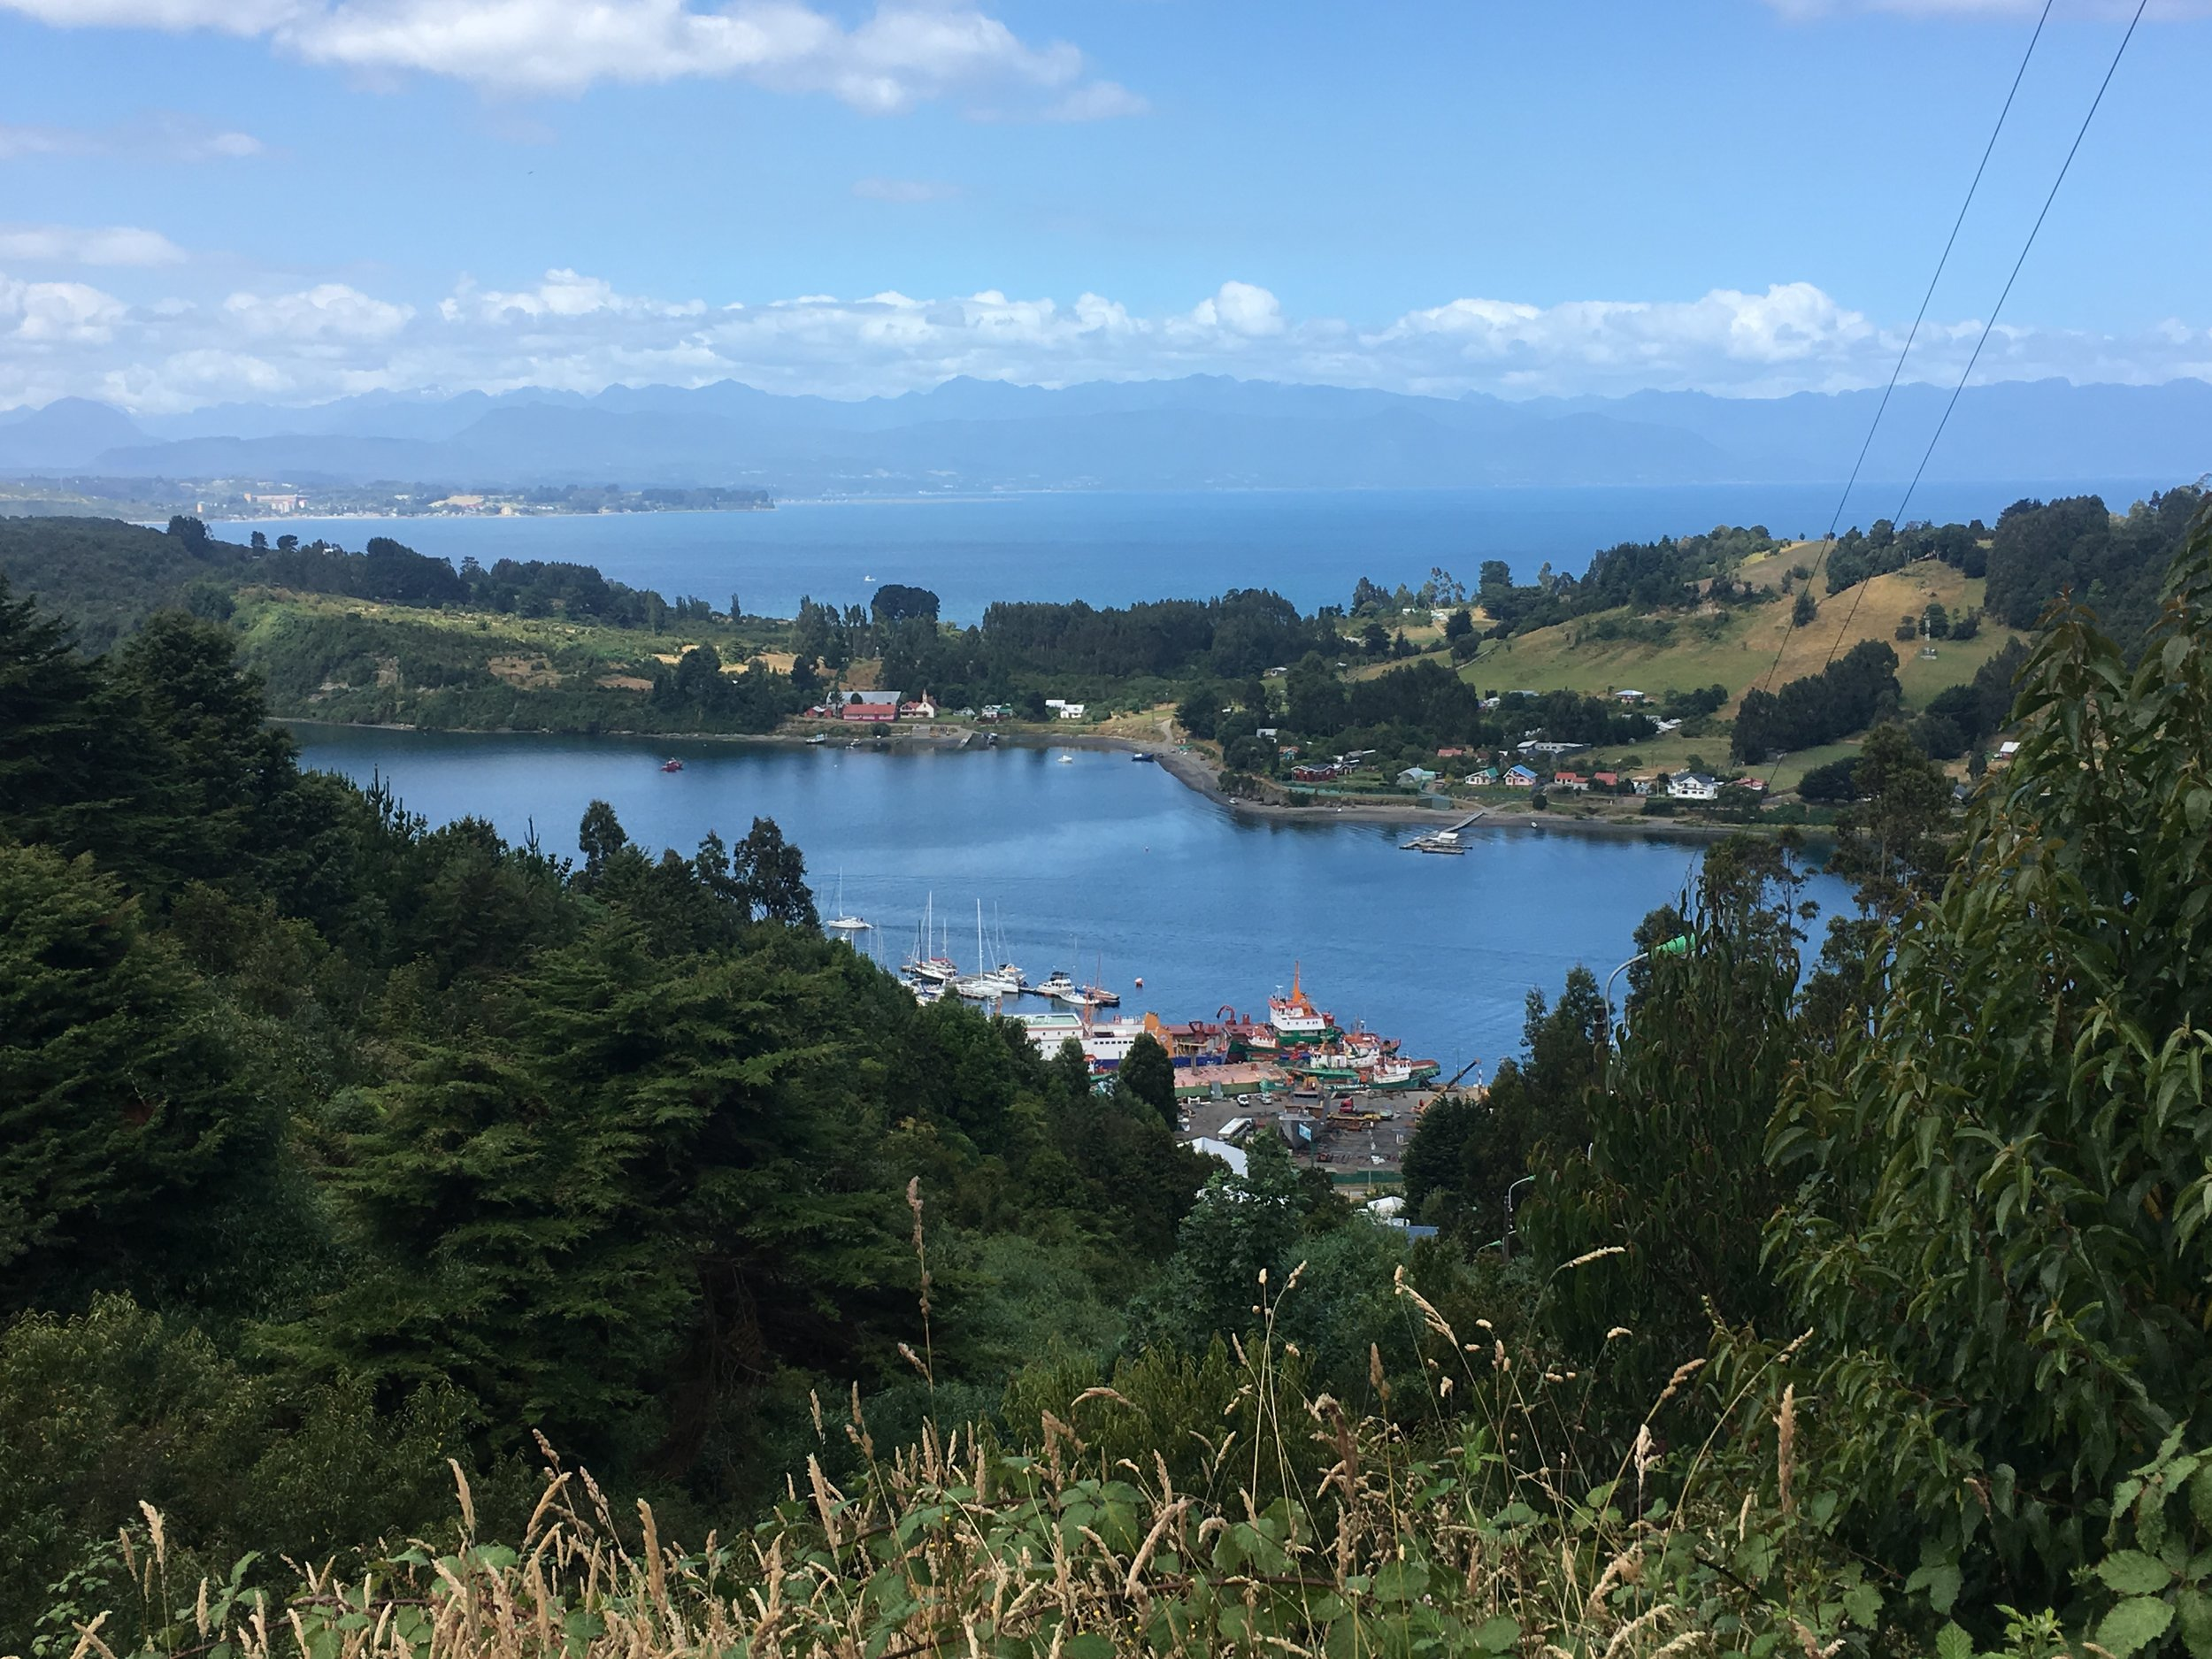 On the mainland, I hiked up a long set of stairs to the ridge, overlooking Isla Tenglo and the Club Nautico Reloncavi.